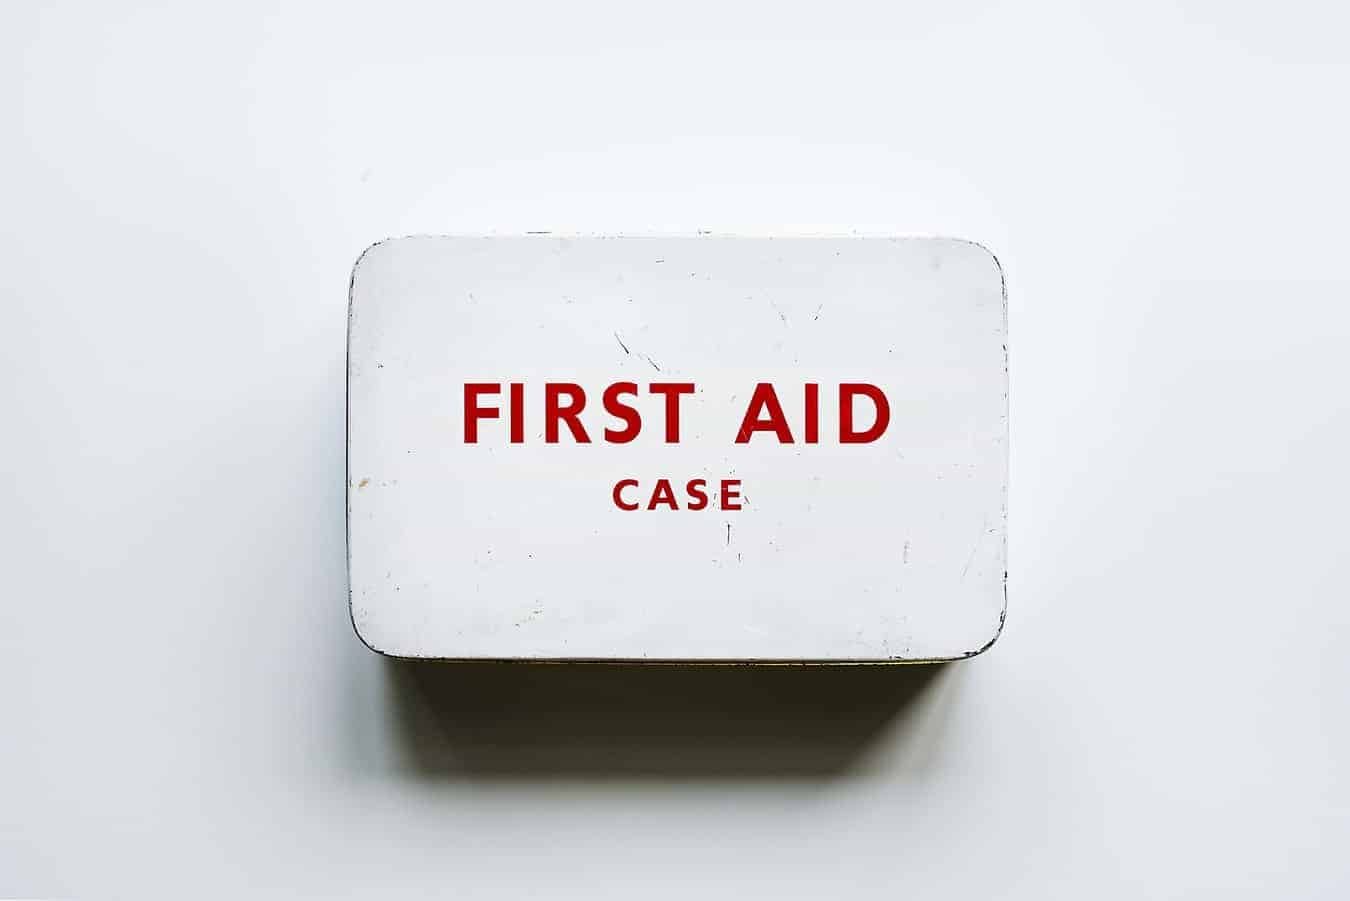 A white first aid kit with red writing